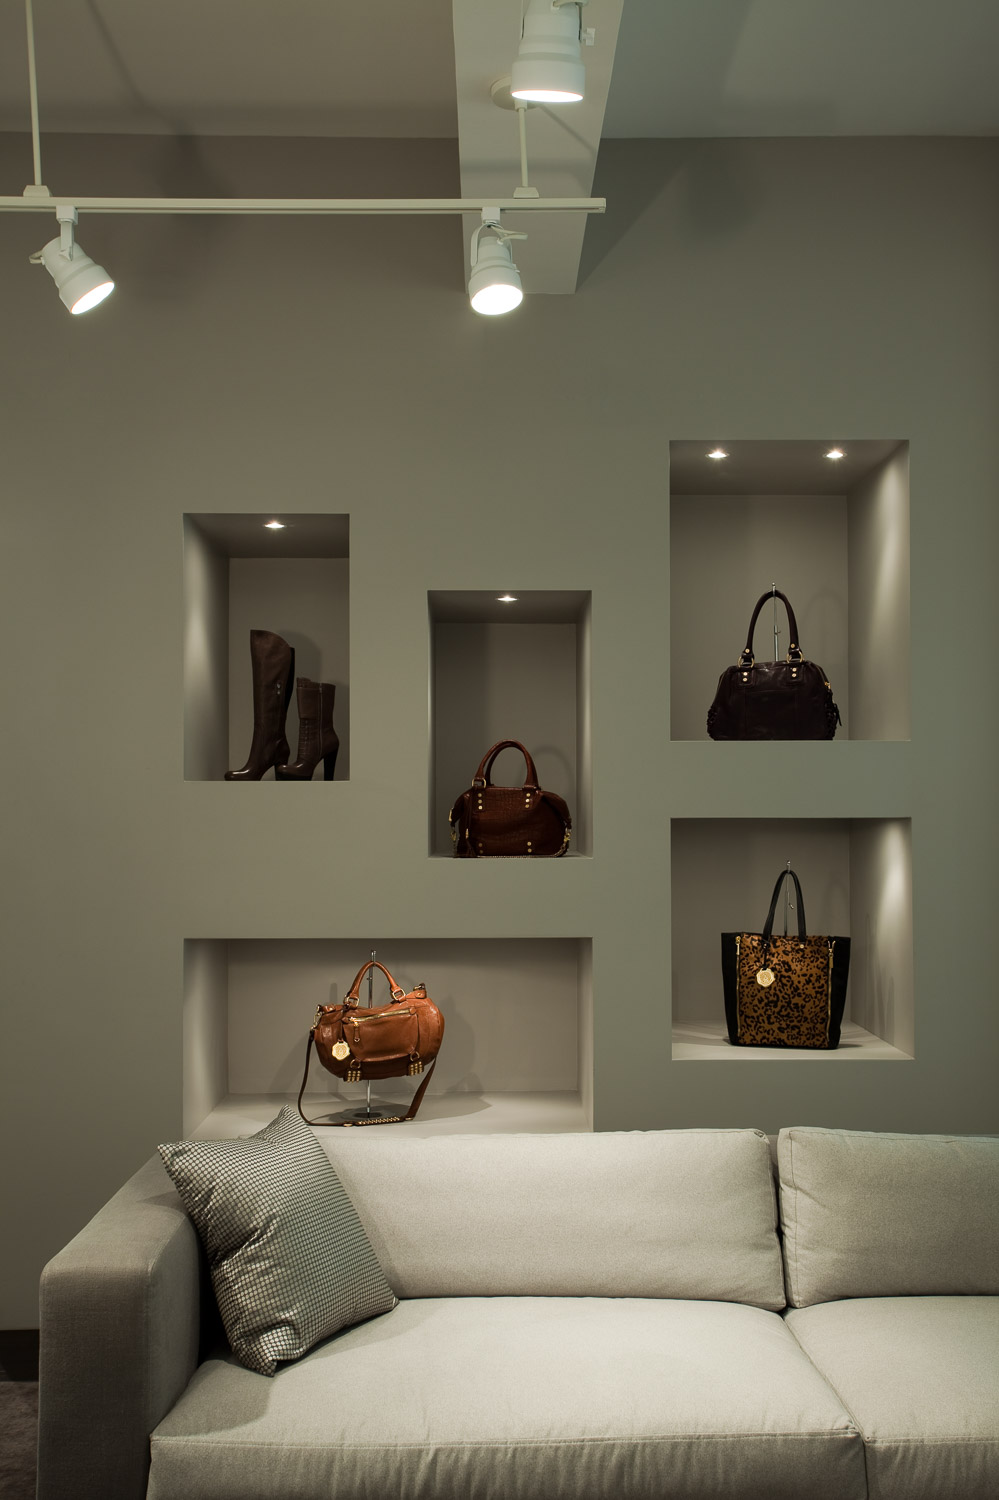 Vince Camuto Showroom Design 05.jpg